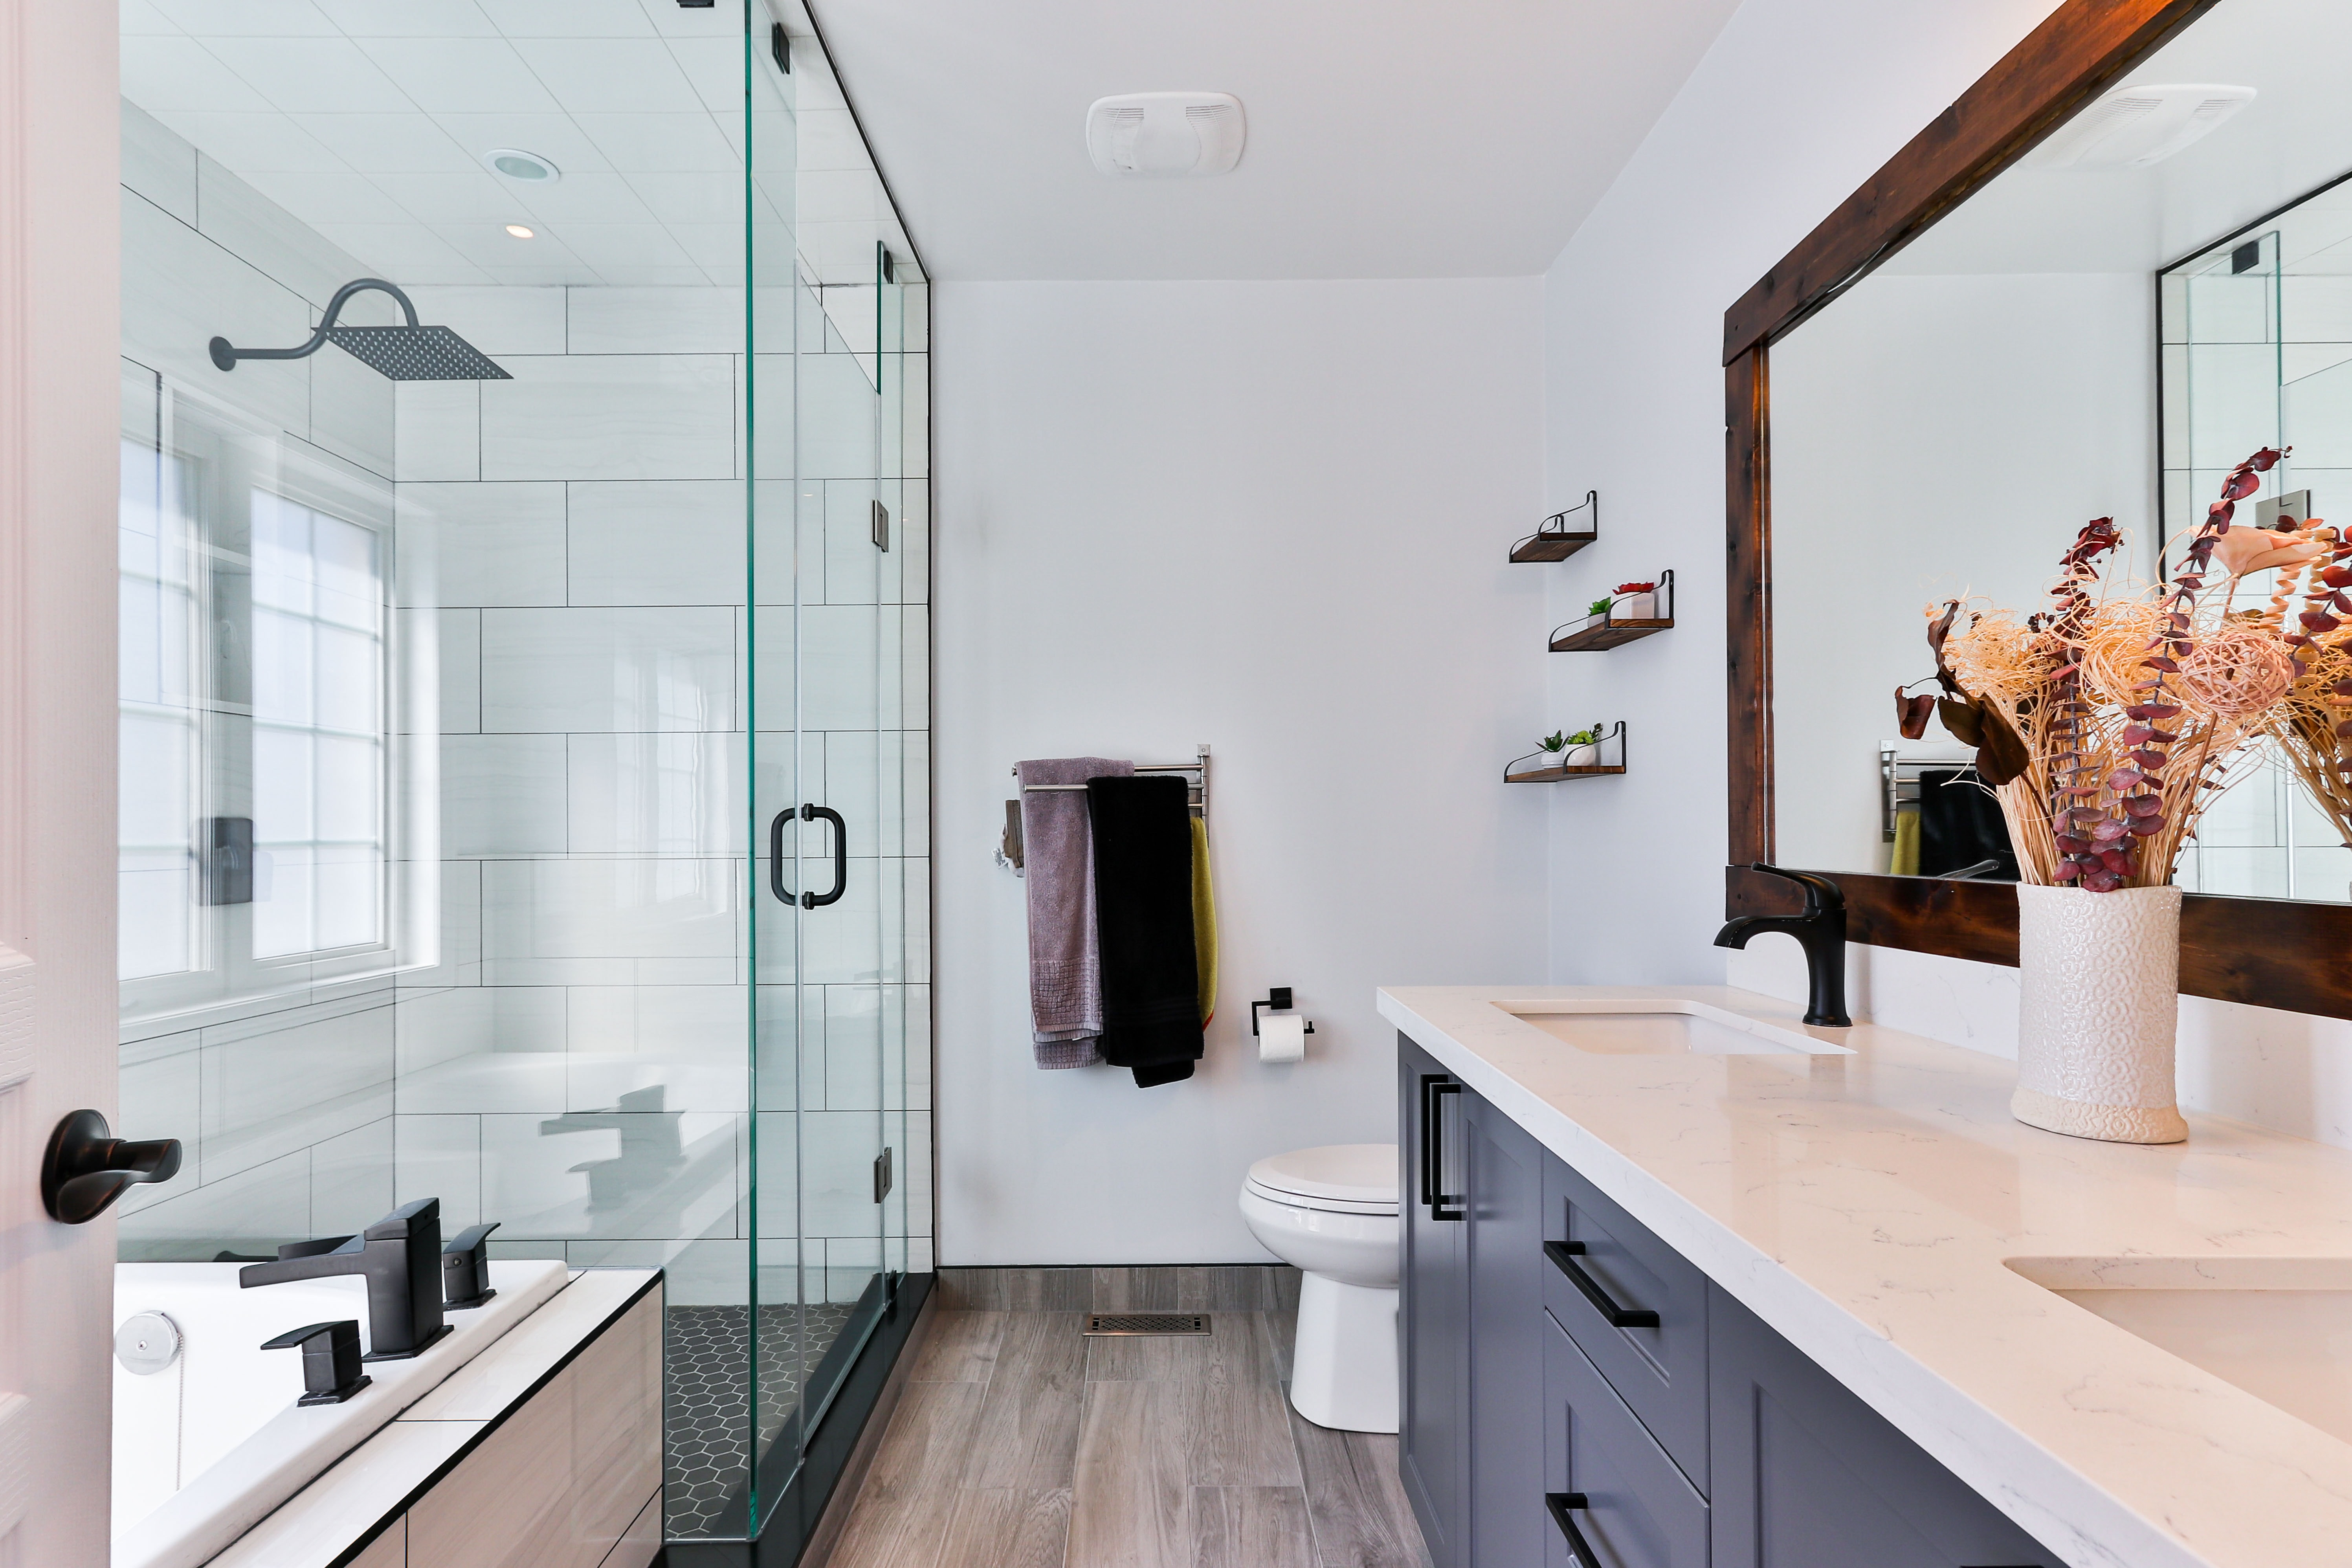 HOW TO CLEAN THEBATHROOM